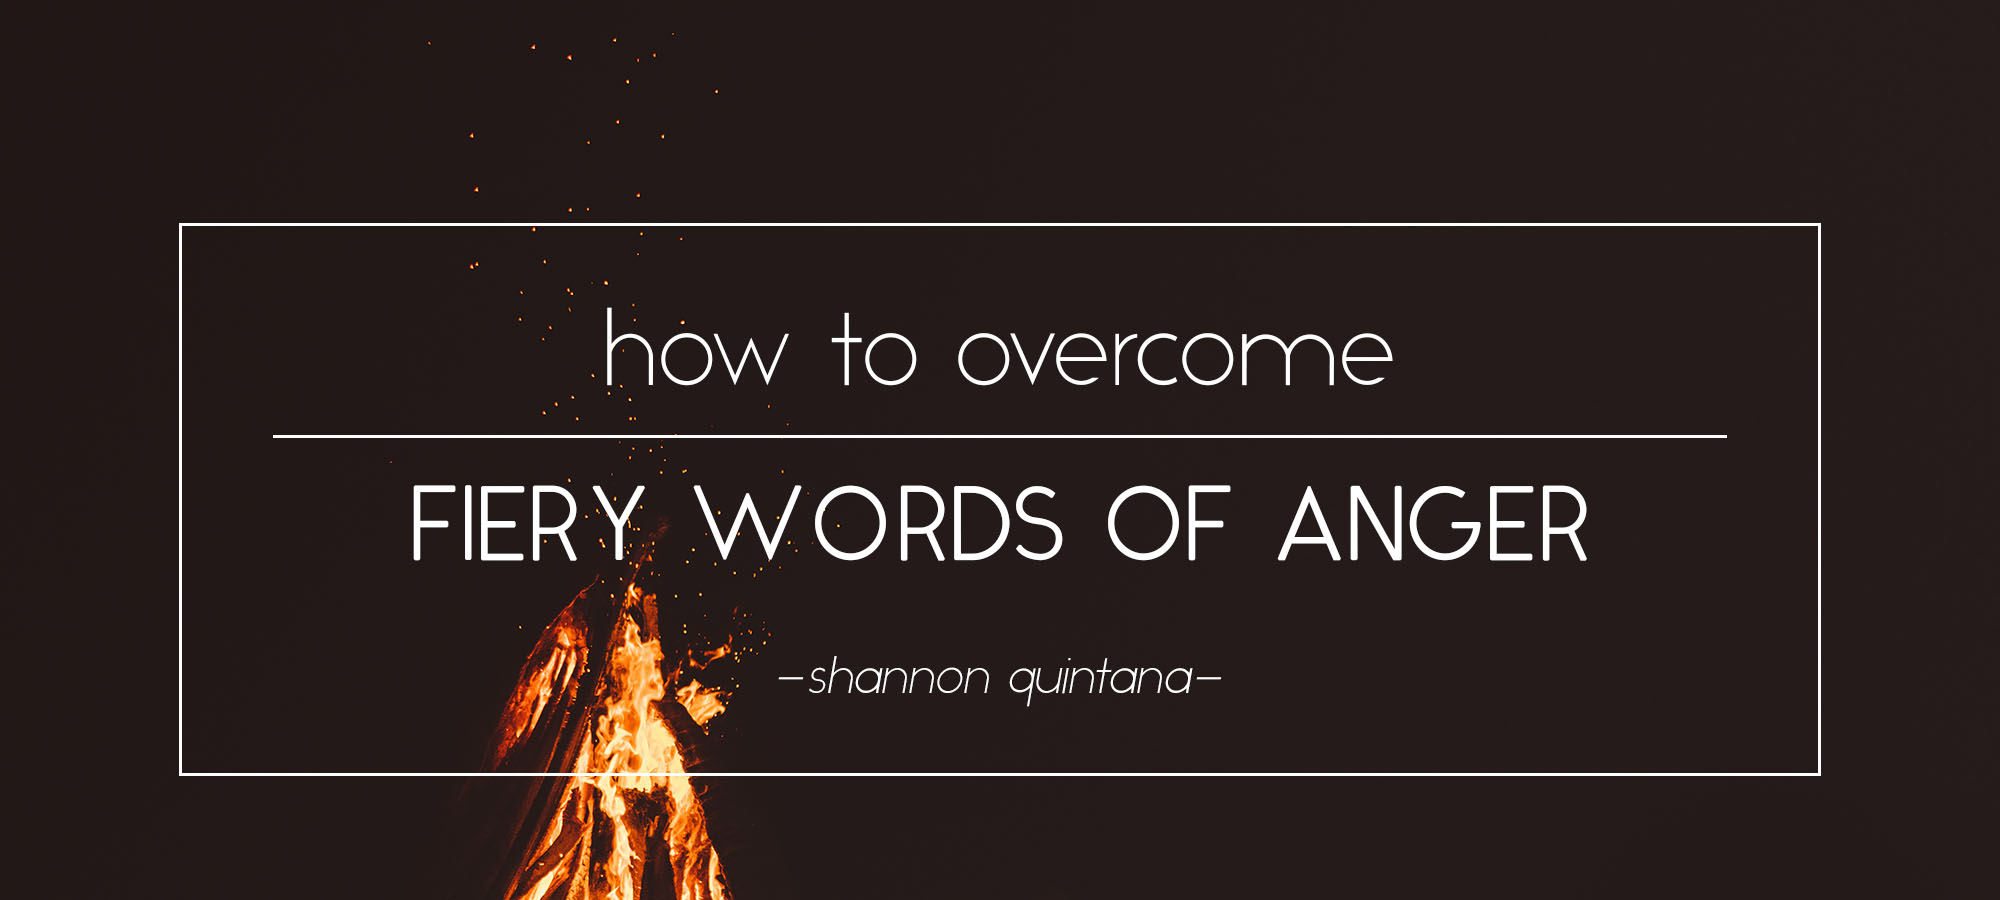 How to Overcome Fiery Words of Anger